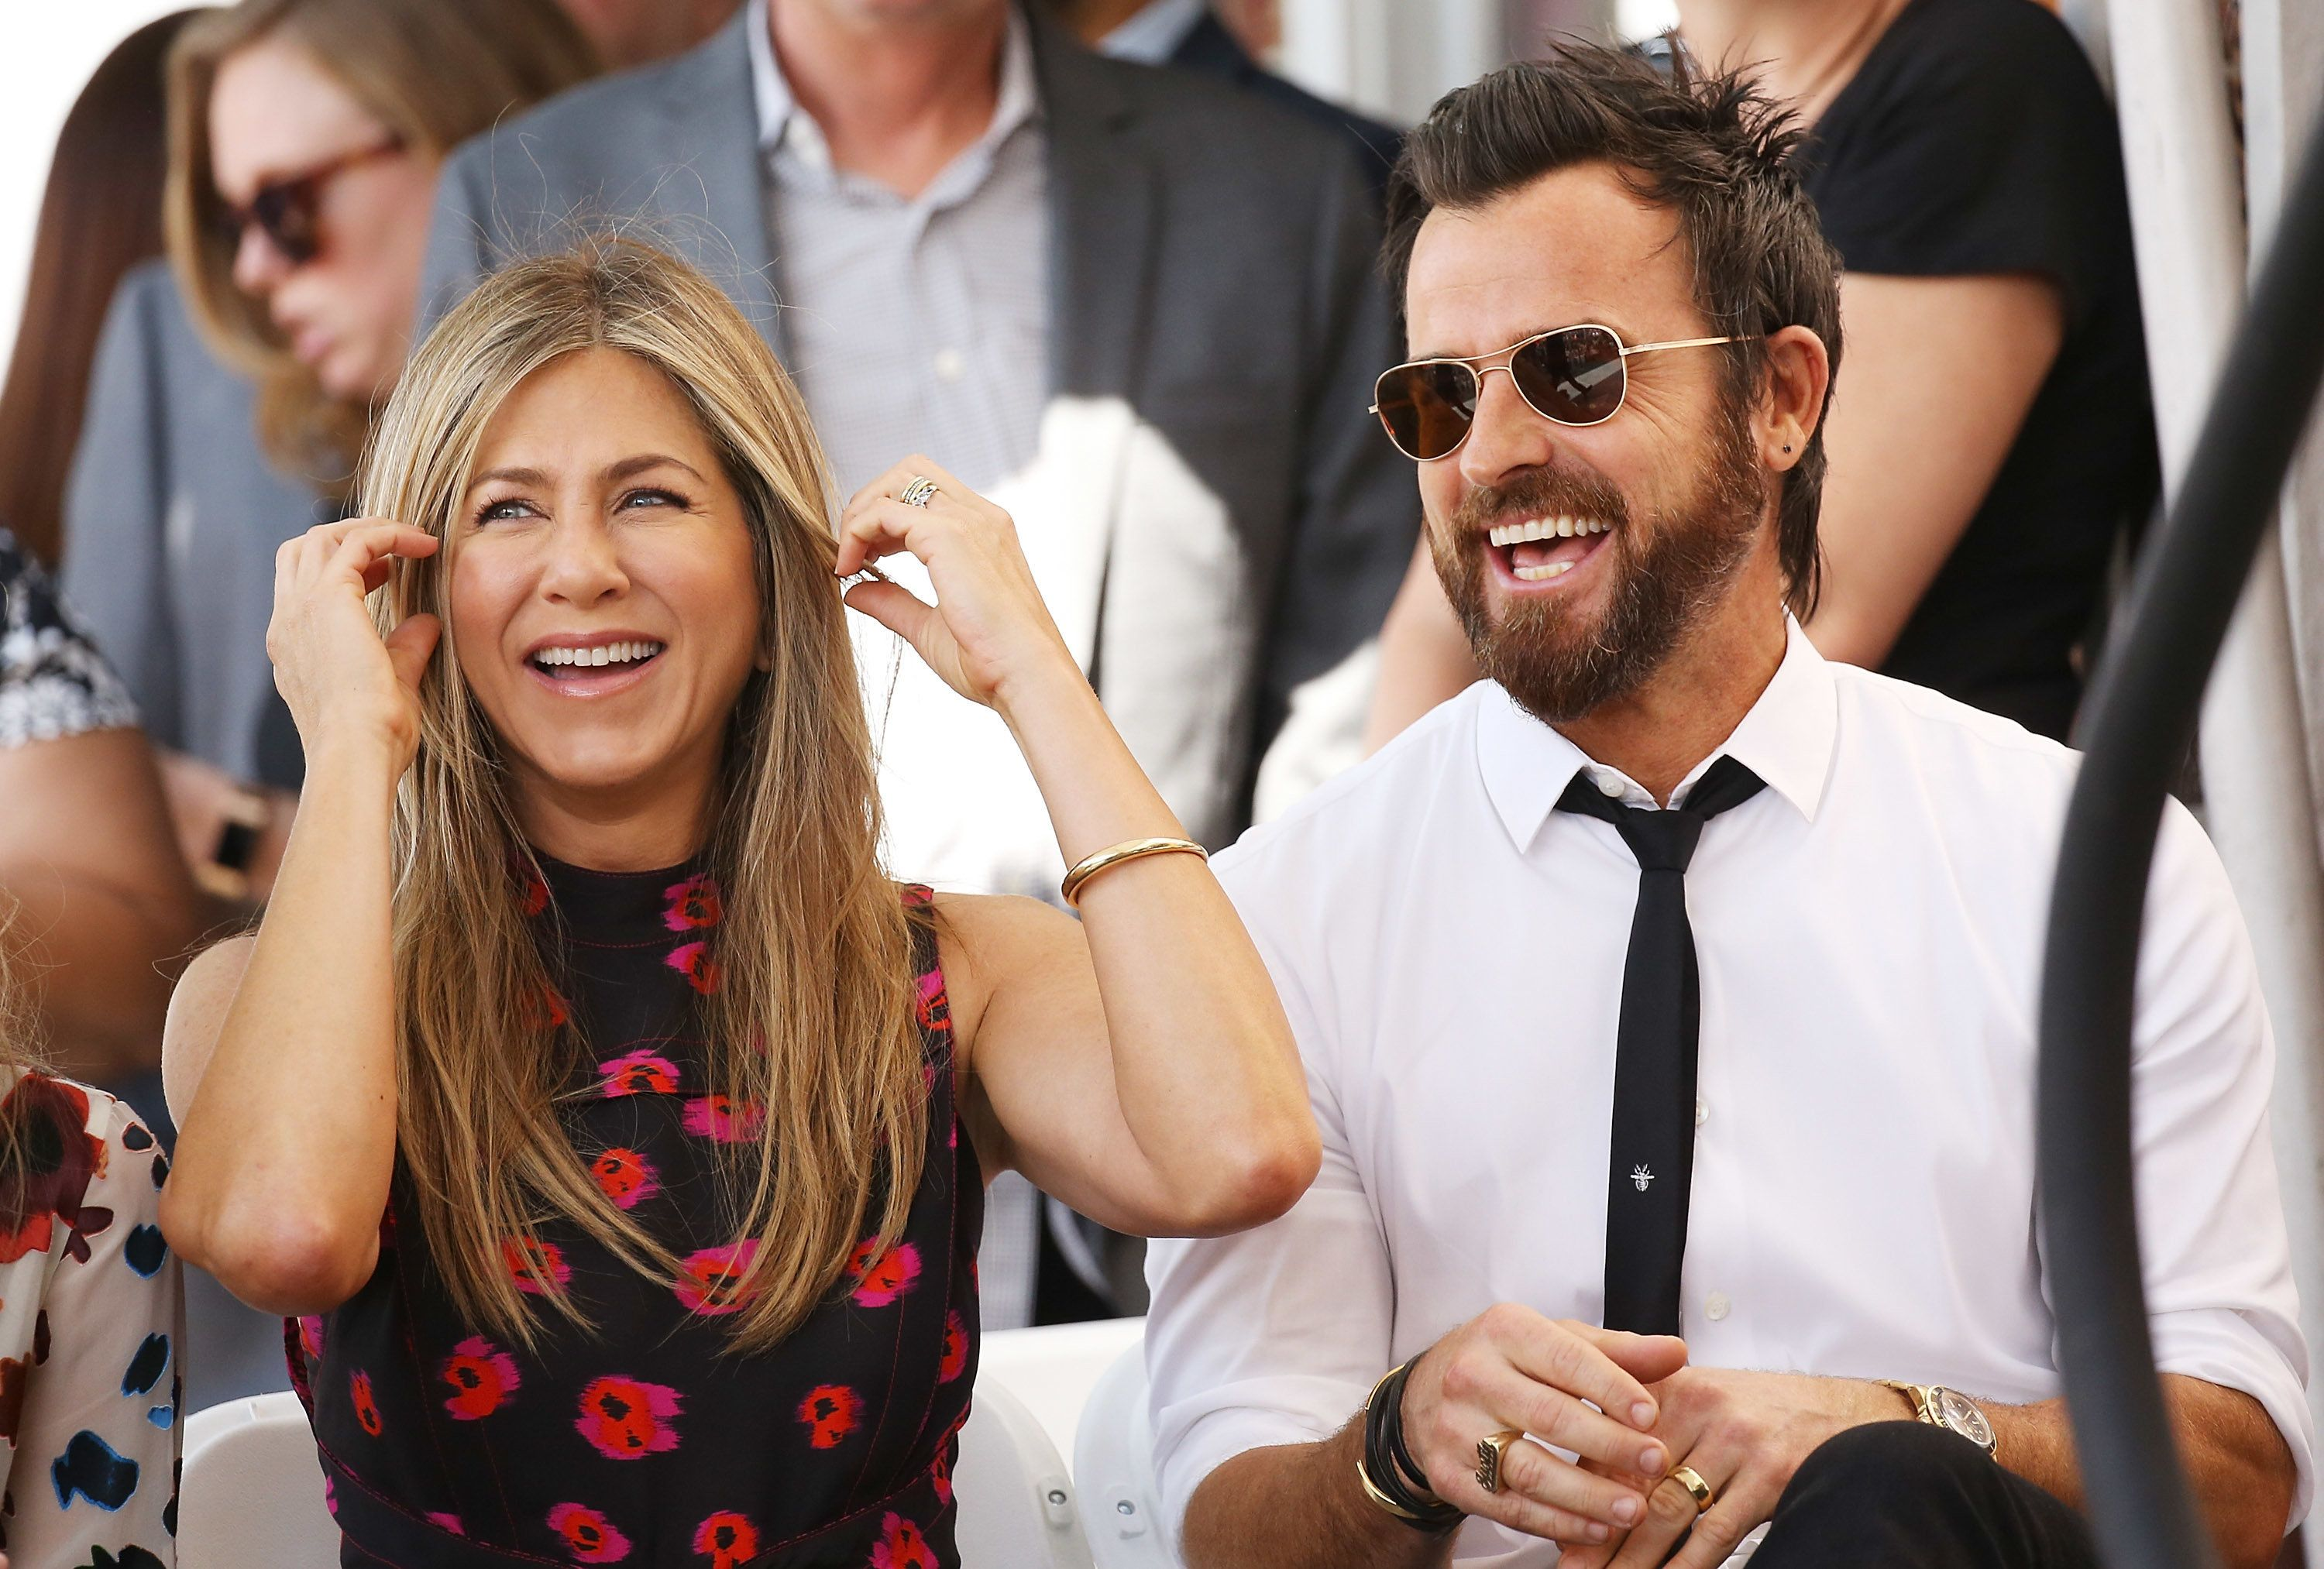 Jennifer Aniston And Justin Theroux 'Lovingly' Split: How To Have An Amicable